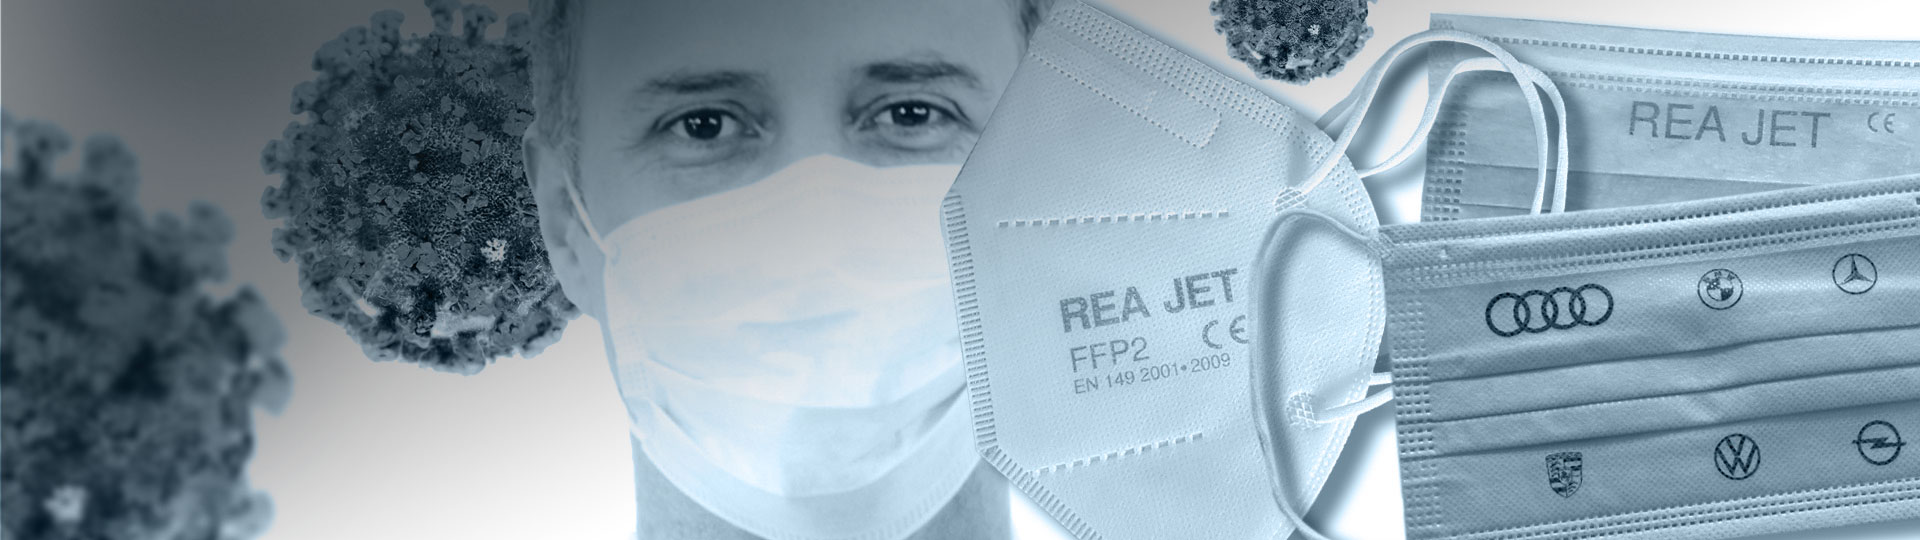 Respirator Mask Marking with REA JET HR - REA JET HR